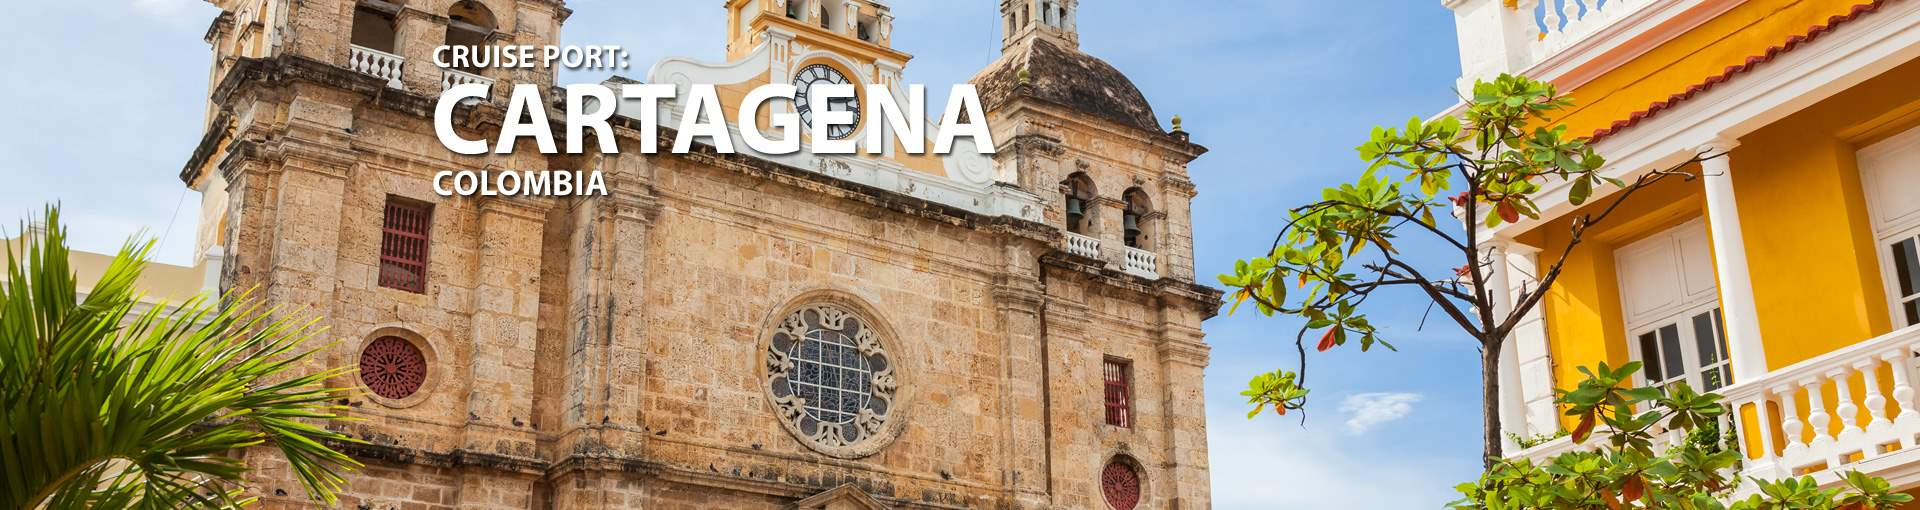 Cruises to Cartagena, Colombia